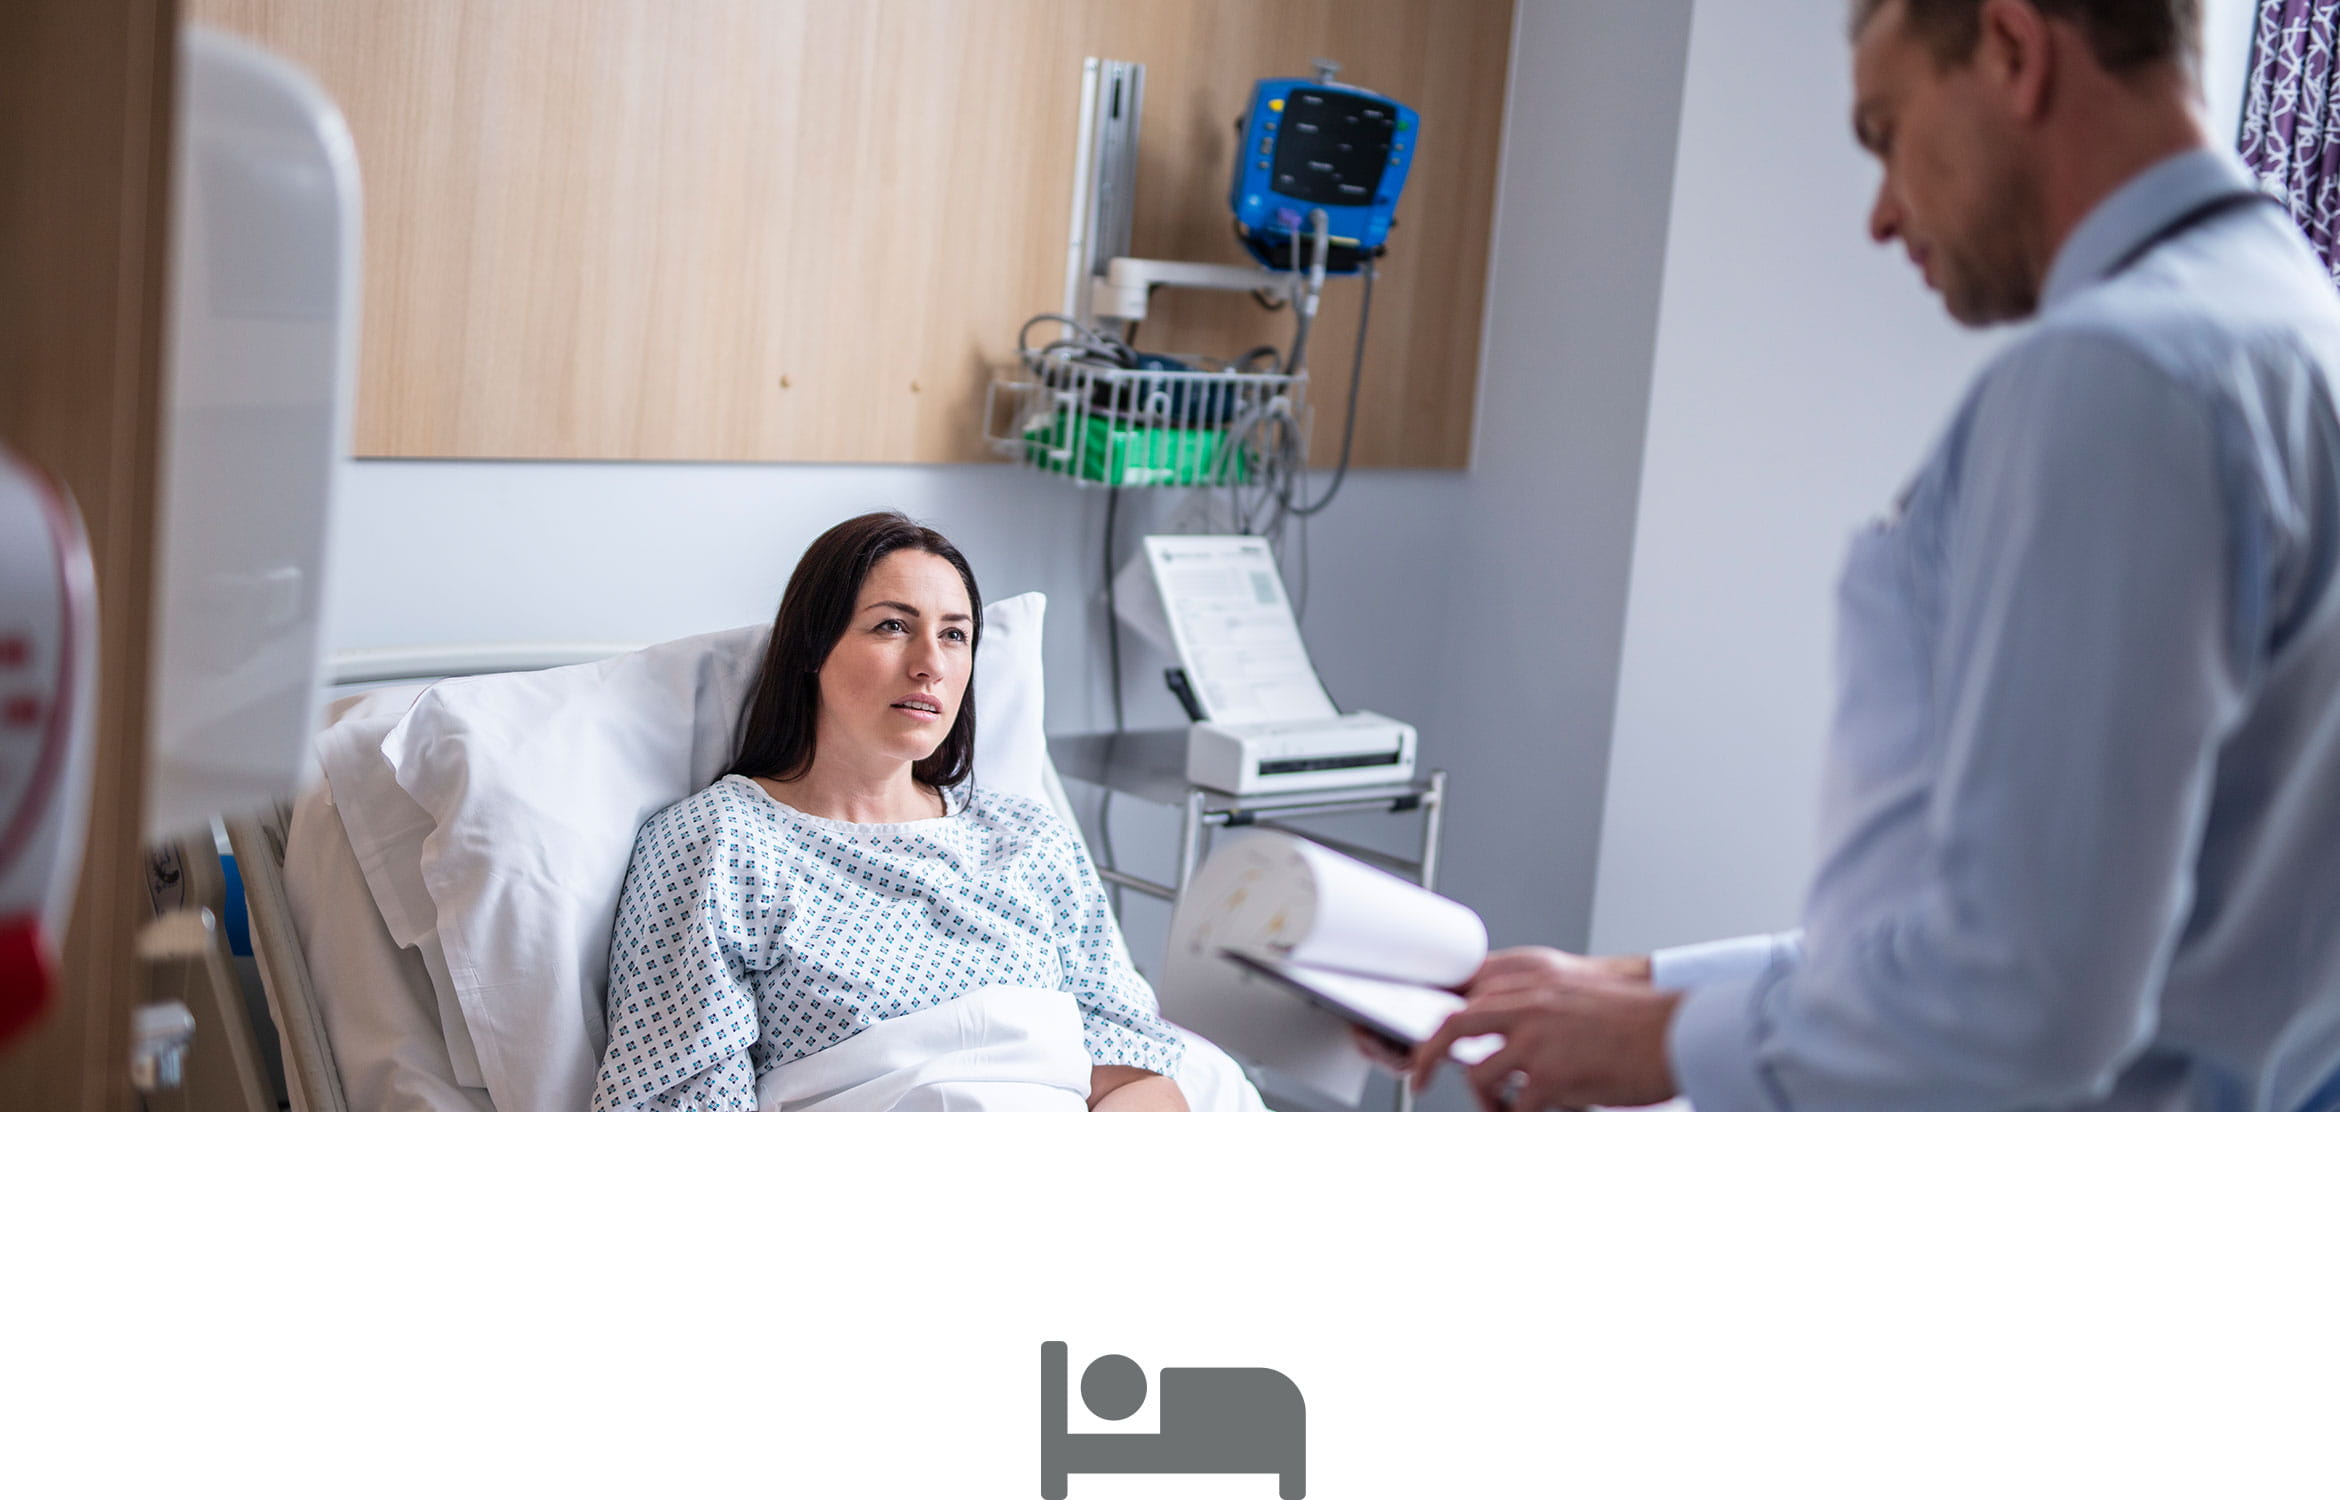 Female patient in hospital bed male doctor looking at patient notes with grey bed icon